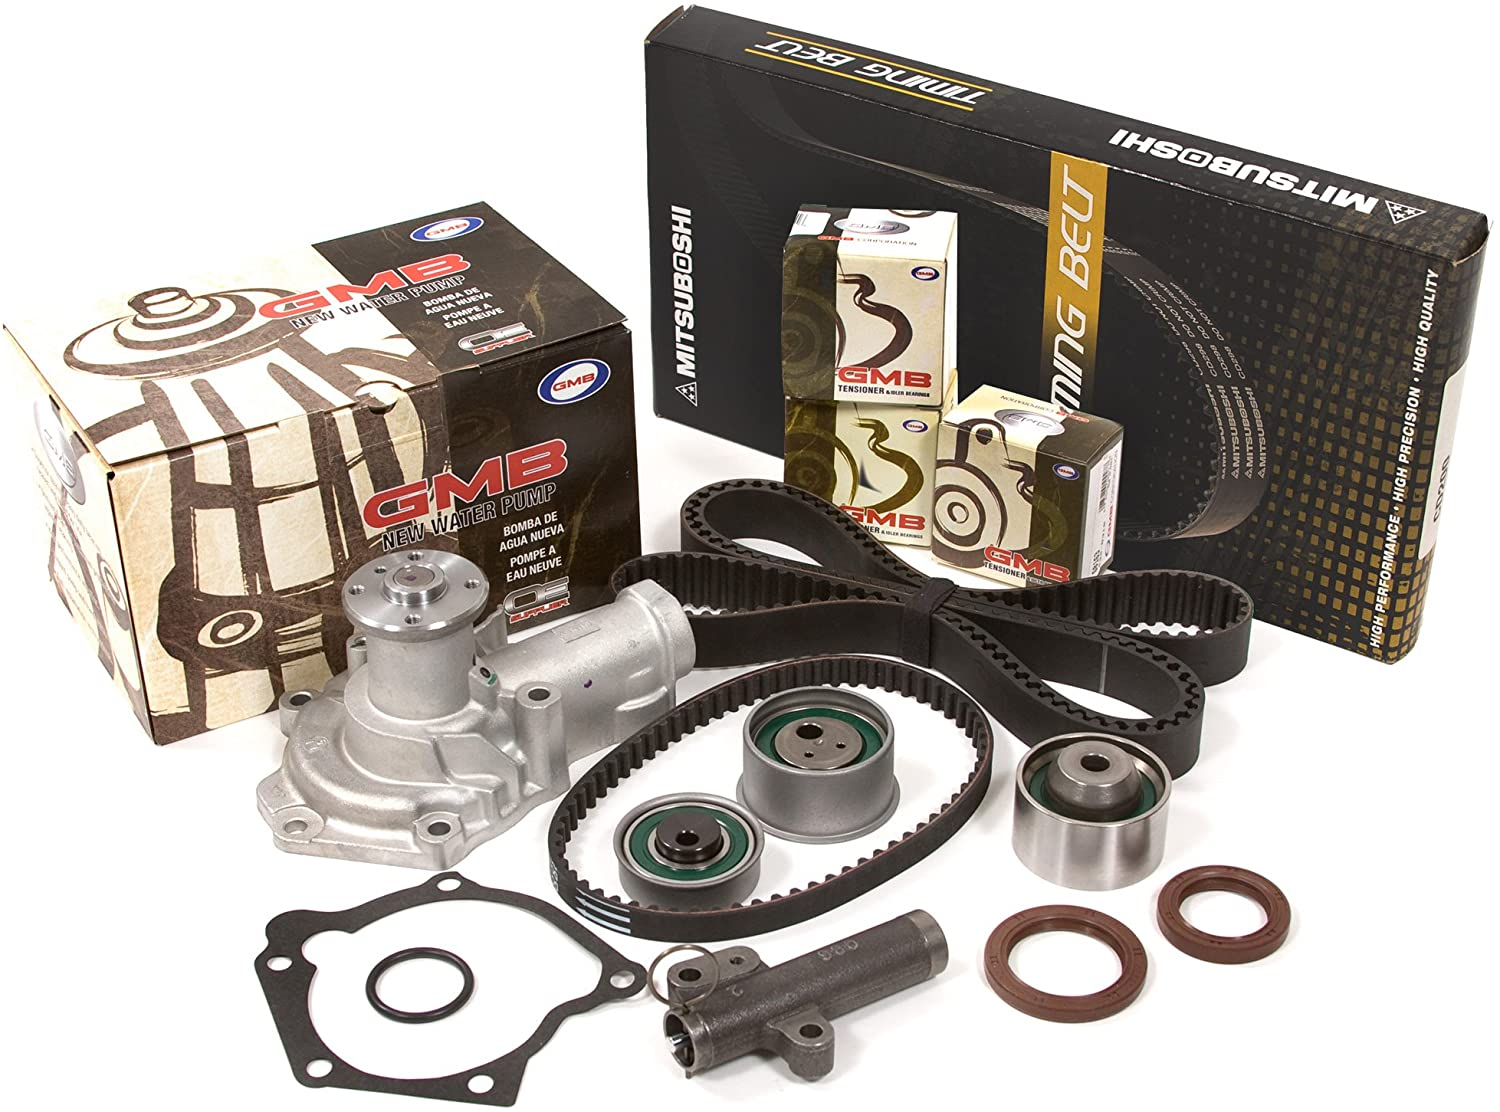 Evergreen TBK232MHWP2 Compatible With 99-05 2.4L Dodge Chrysler Eclipse Galant SOHC 4G64 Timing Belt Kit GMB Water Pump